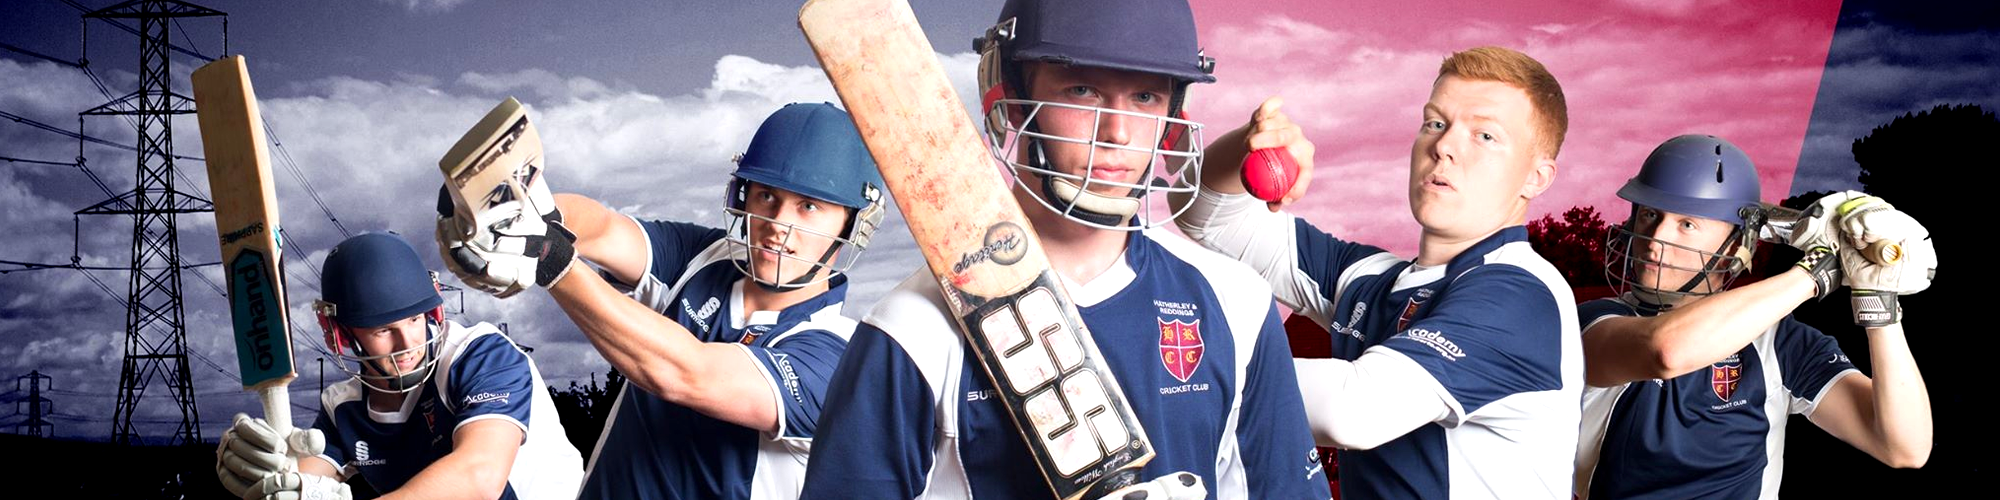 NatWest U19 Club T20 Jelf (Header)